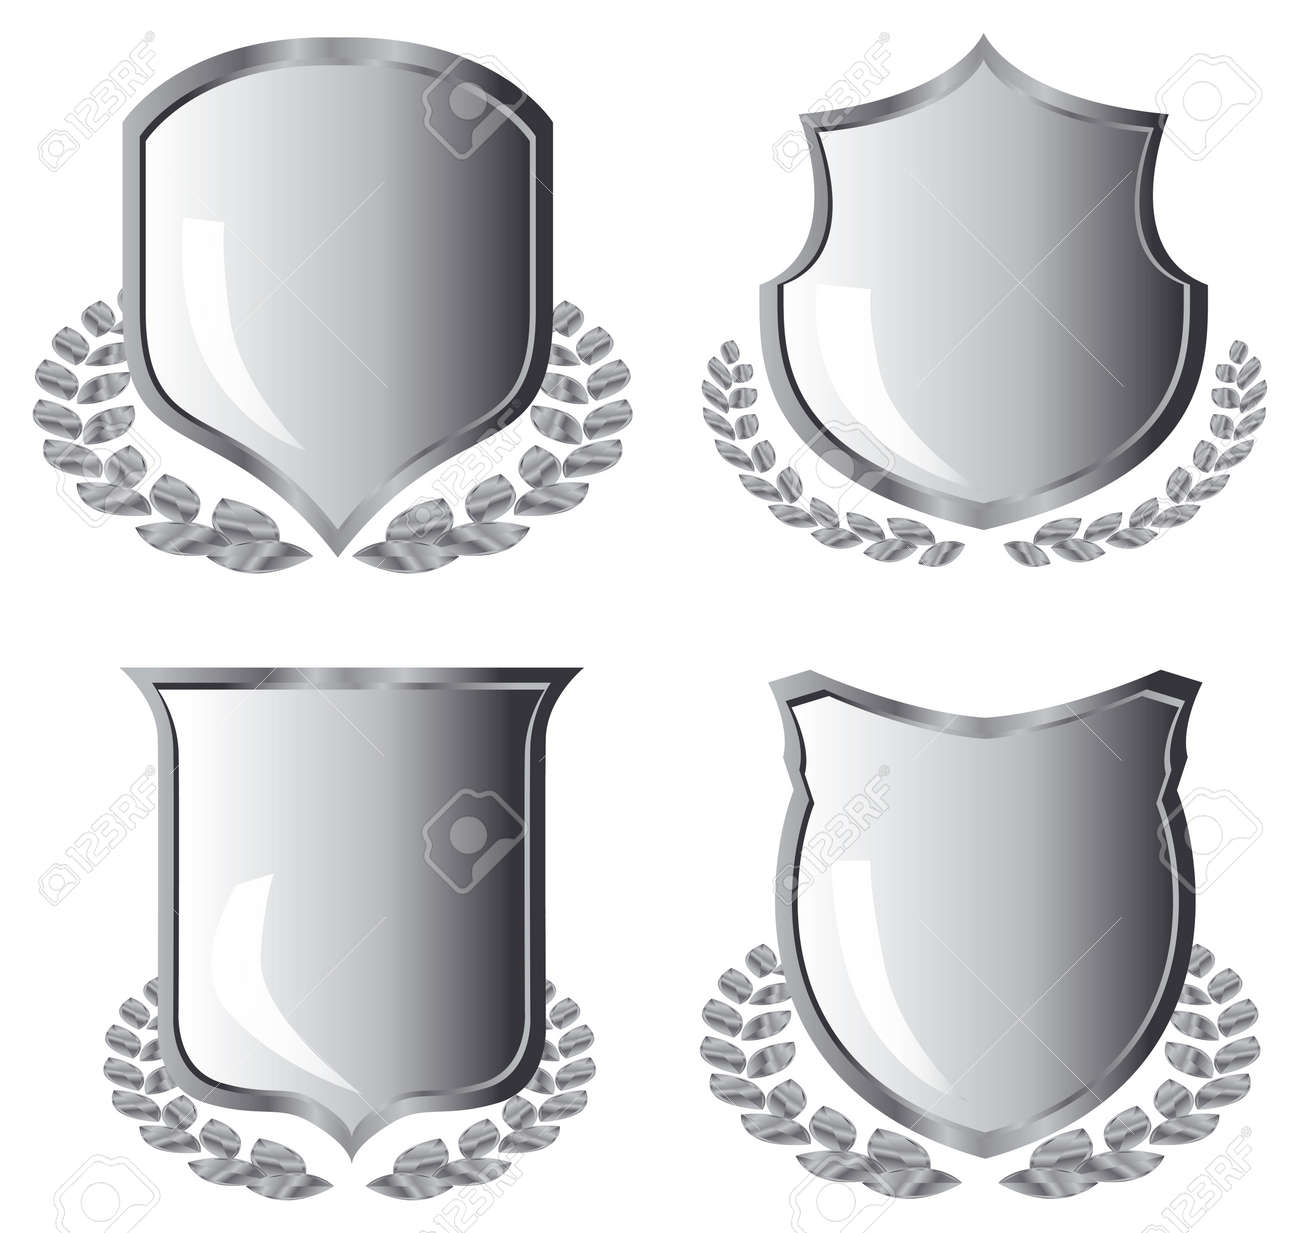 silver shields with laurel wreath on white background - 3883903